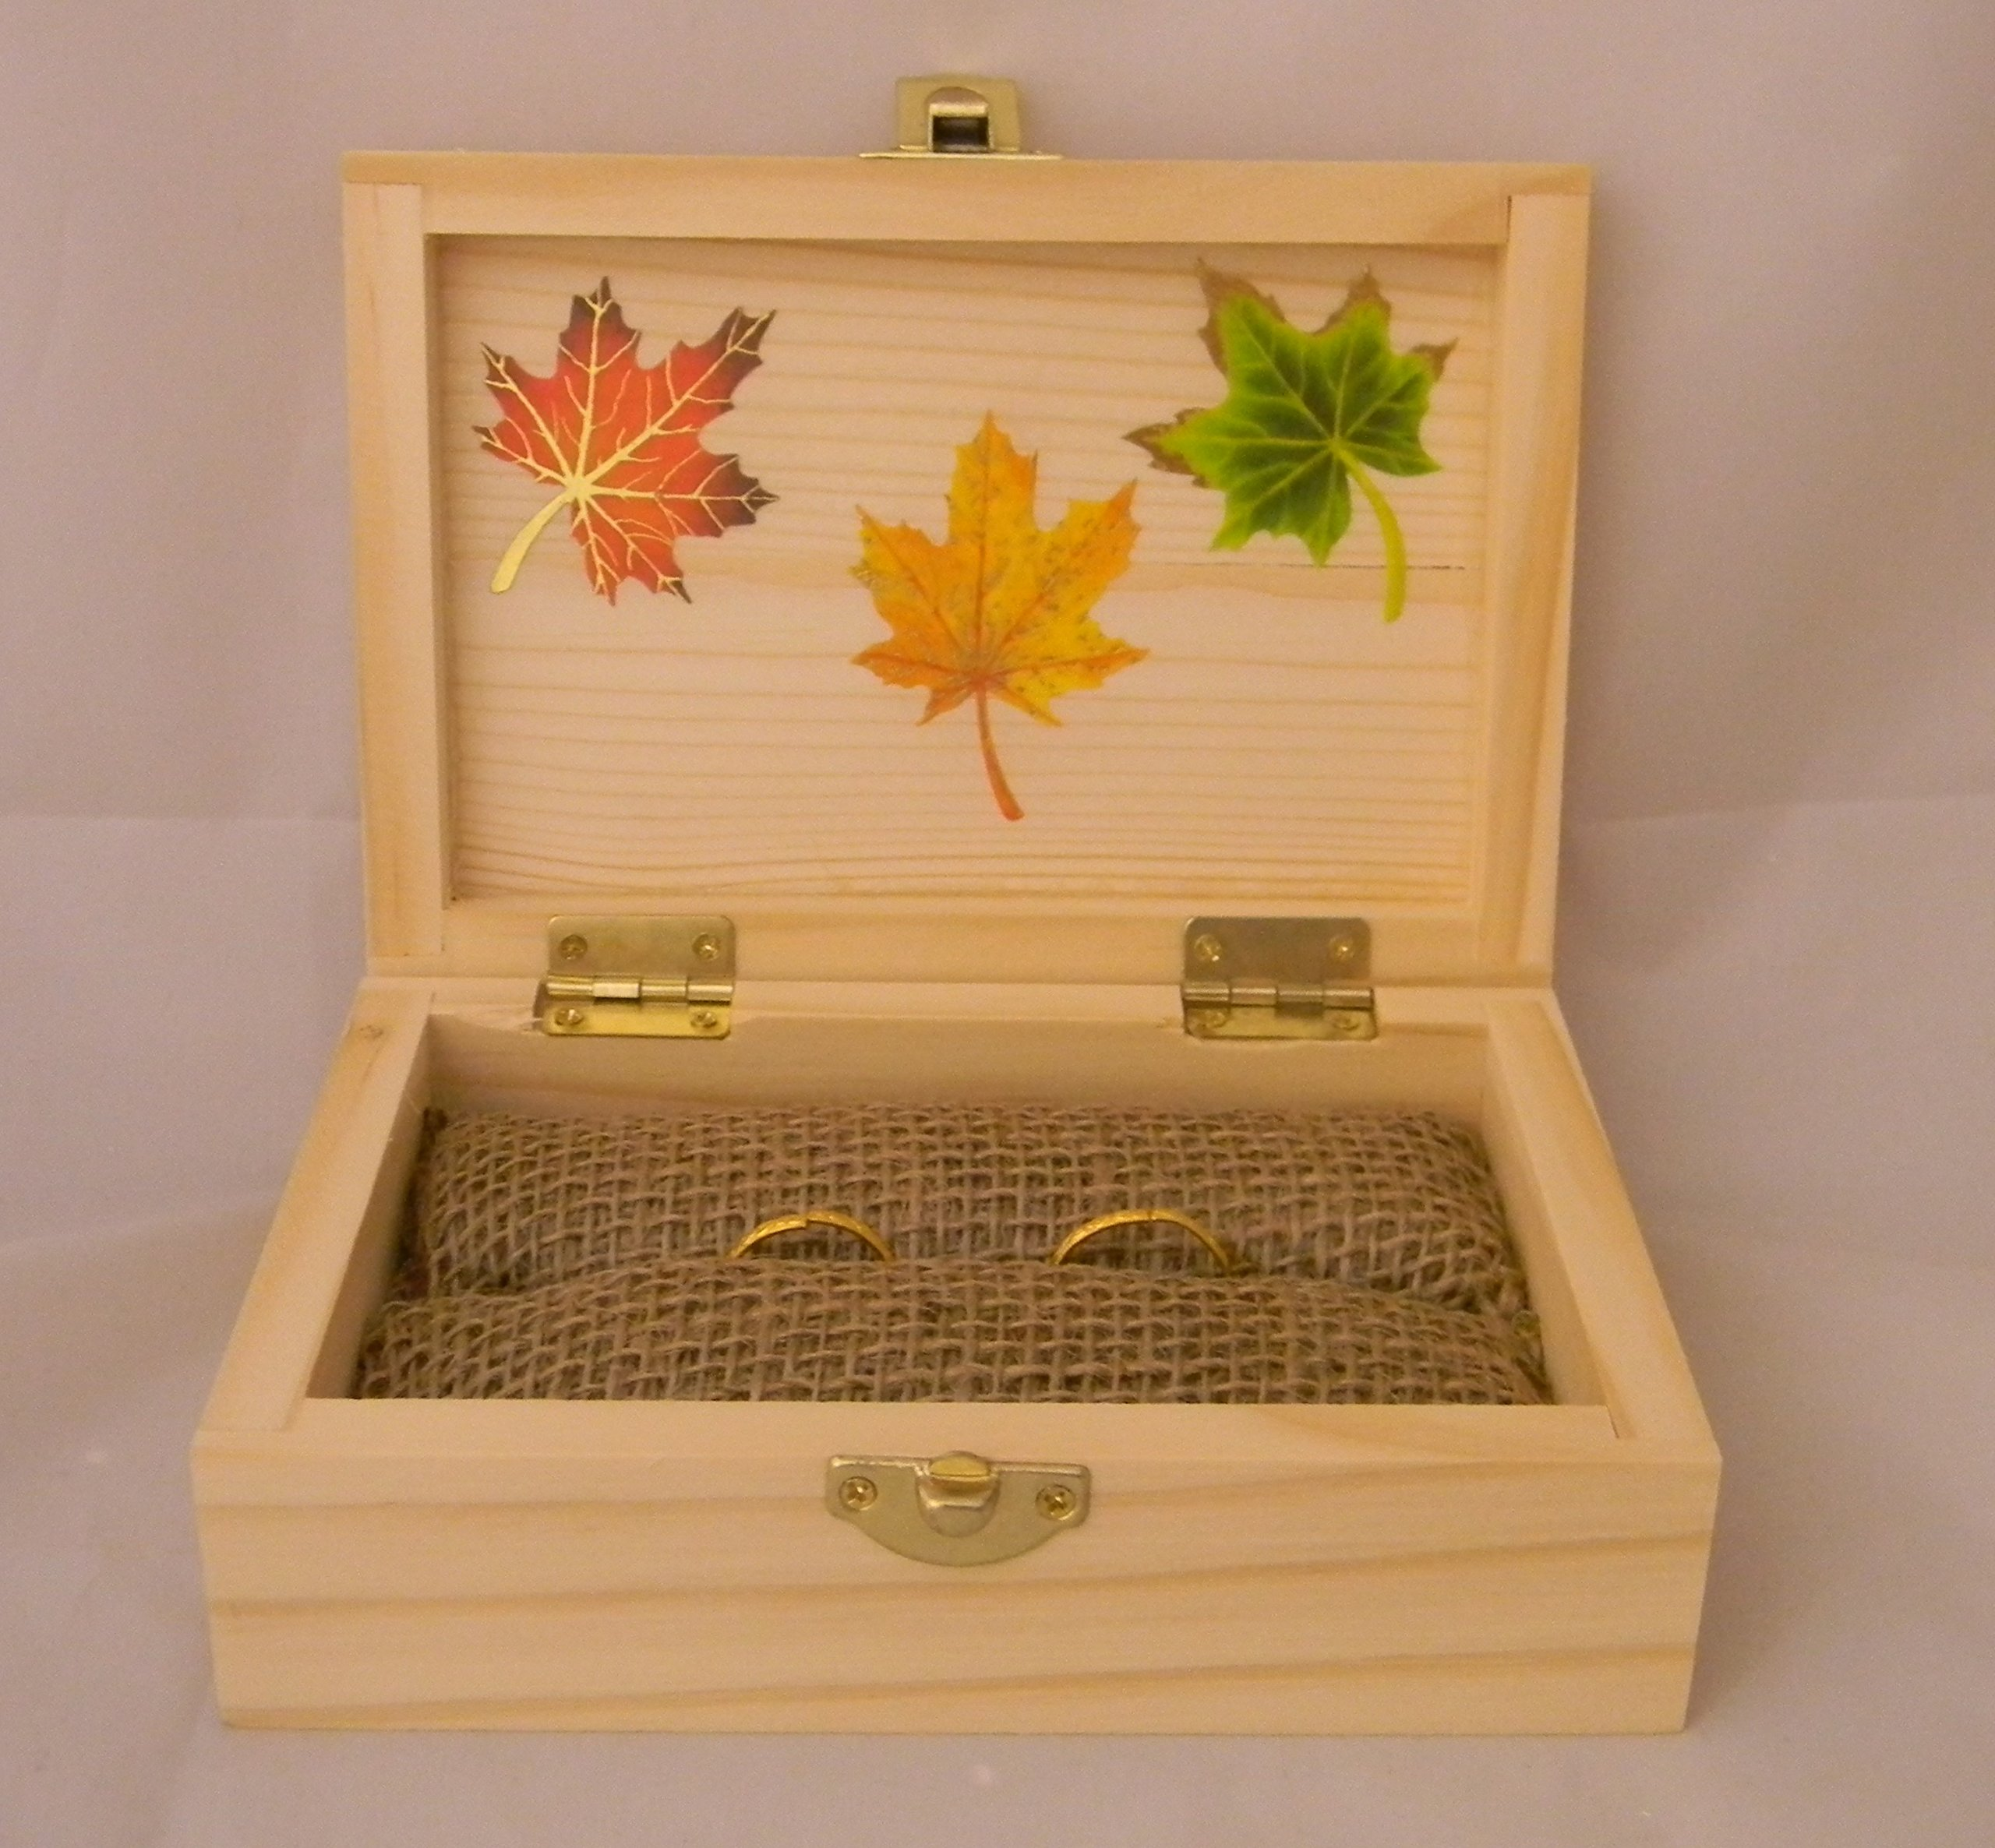 Wedding Party ceremony Fall Leaves ring bearer pillow Box by Custom Design Wedding Supplies by Suzanne